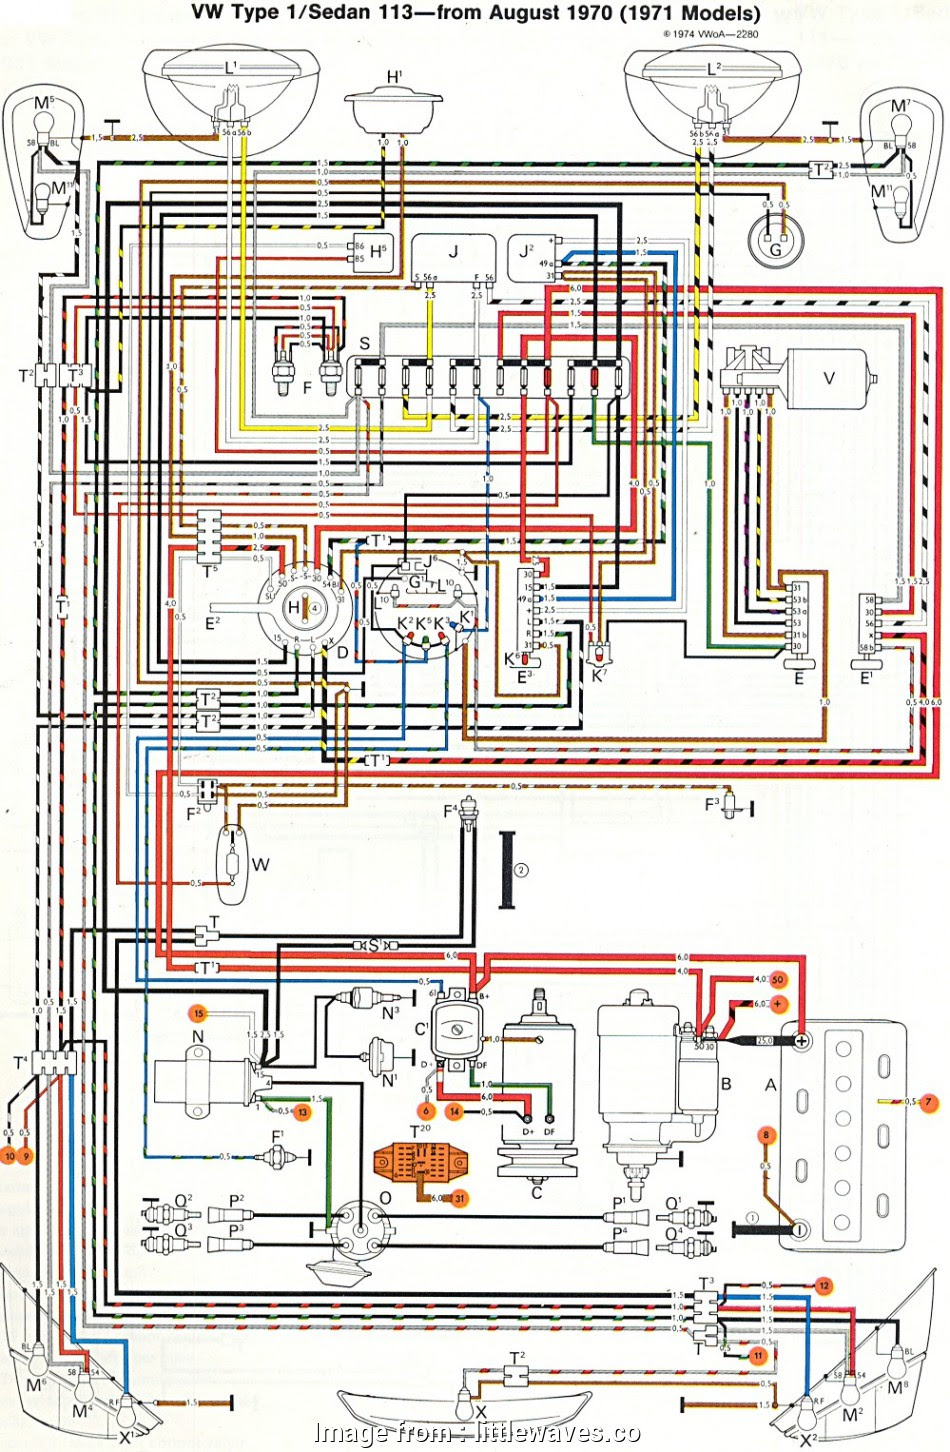 Diagram 73 Beetle Starter Wiring Diagram Full Version Hd Quality Wiring Diagram Dlwiringx18 Locandadossello It